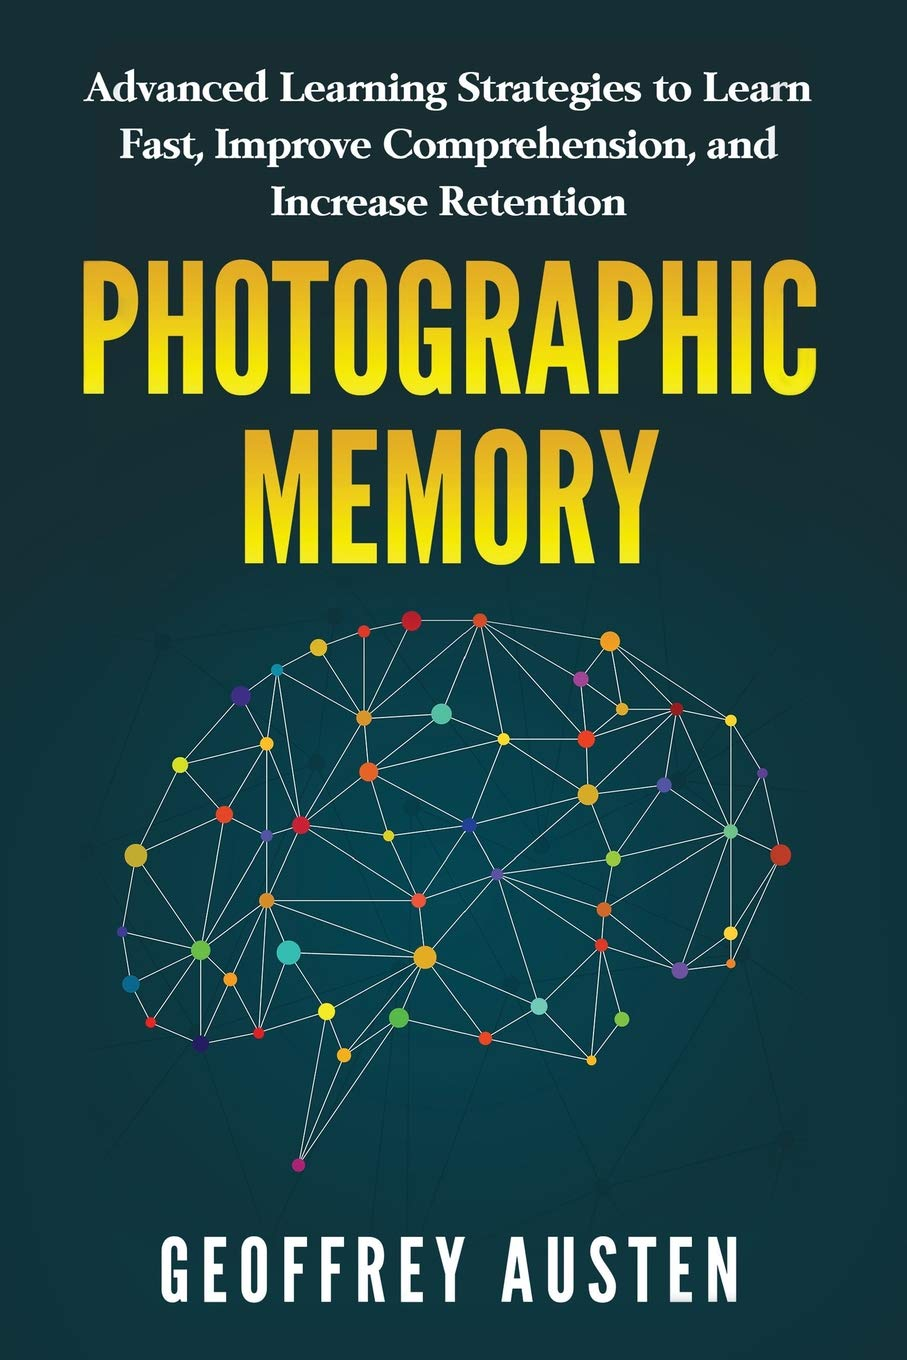 Photographic Memory Strategies Comprehension Retention product image